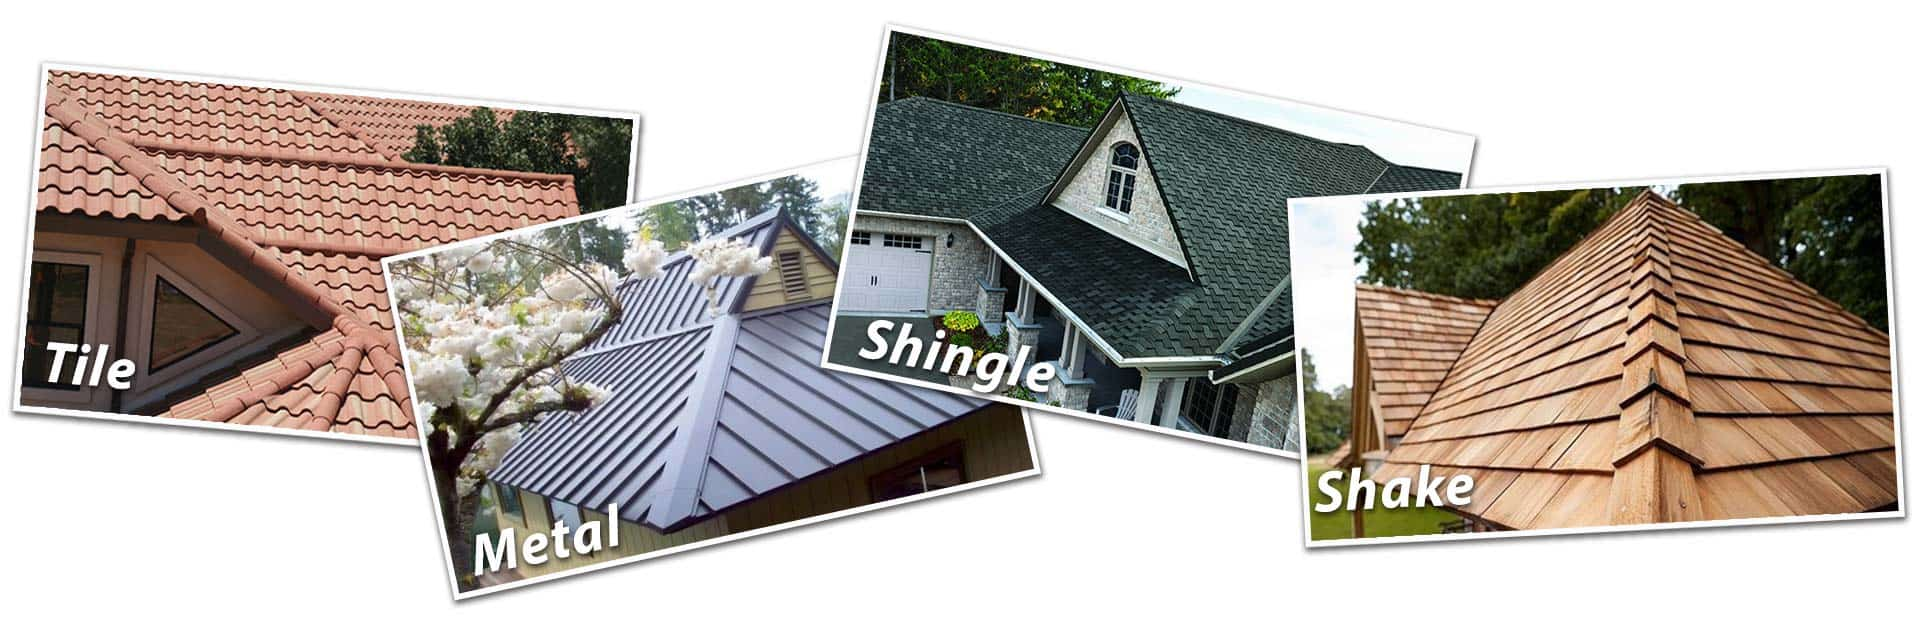 roofing dallas tx - types of roofing - by Ready Roofing & Rennovation